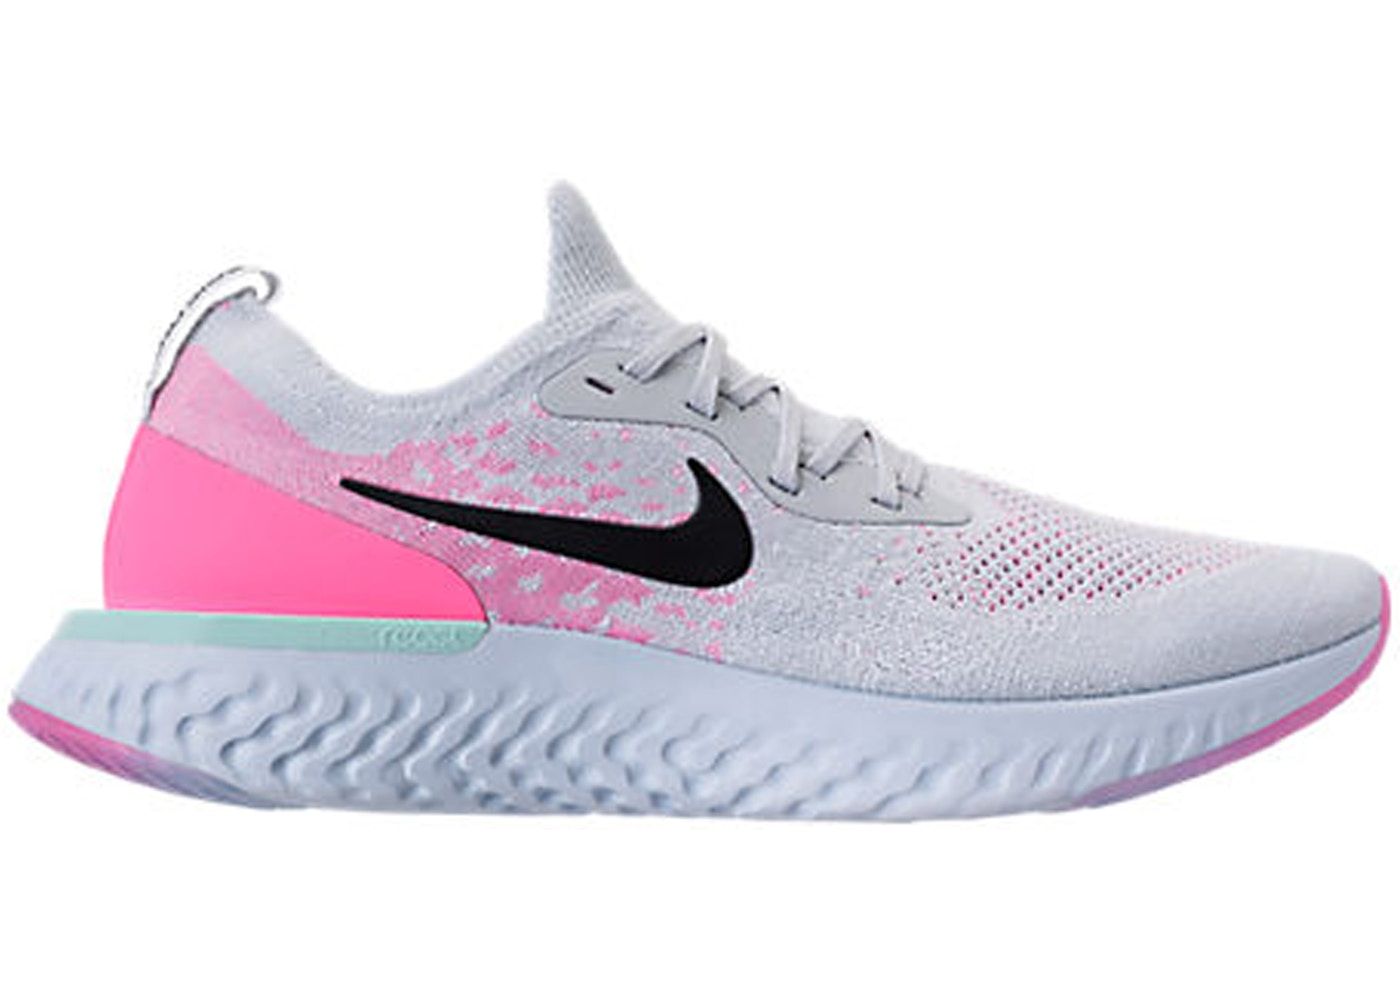 e2a815d181b6 Nike Epic React Flyknit First Blush - AQ0067-007